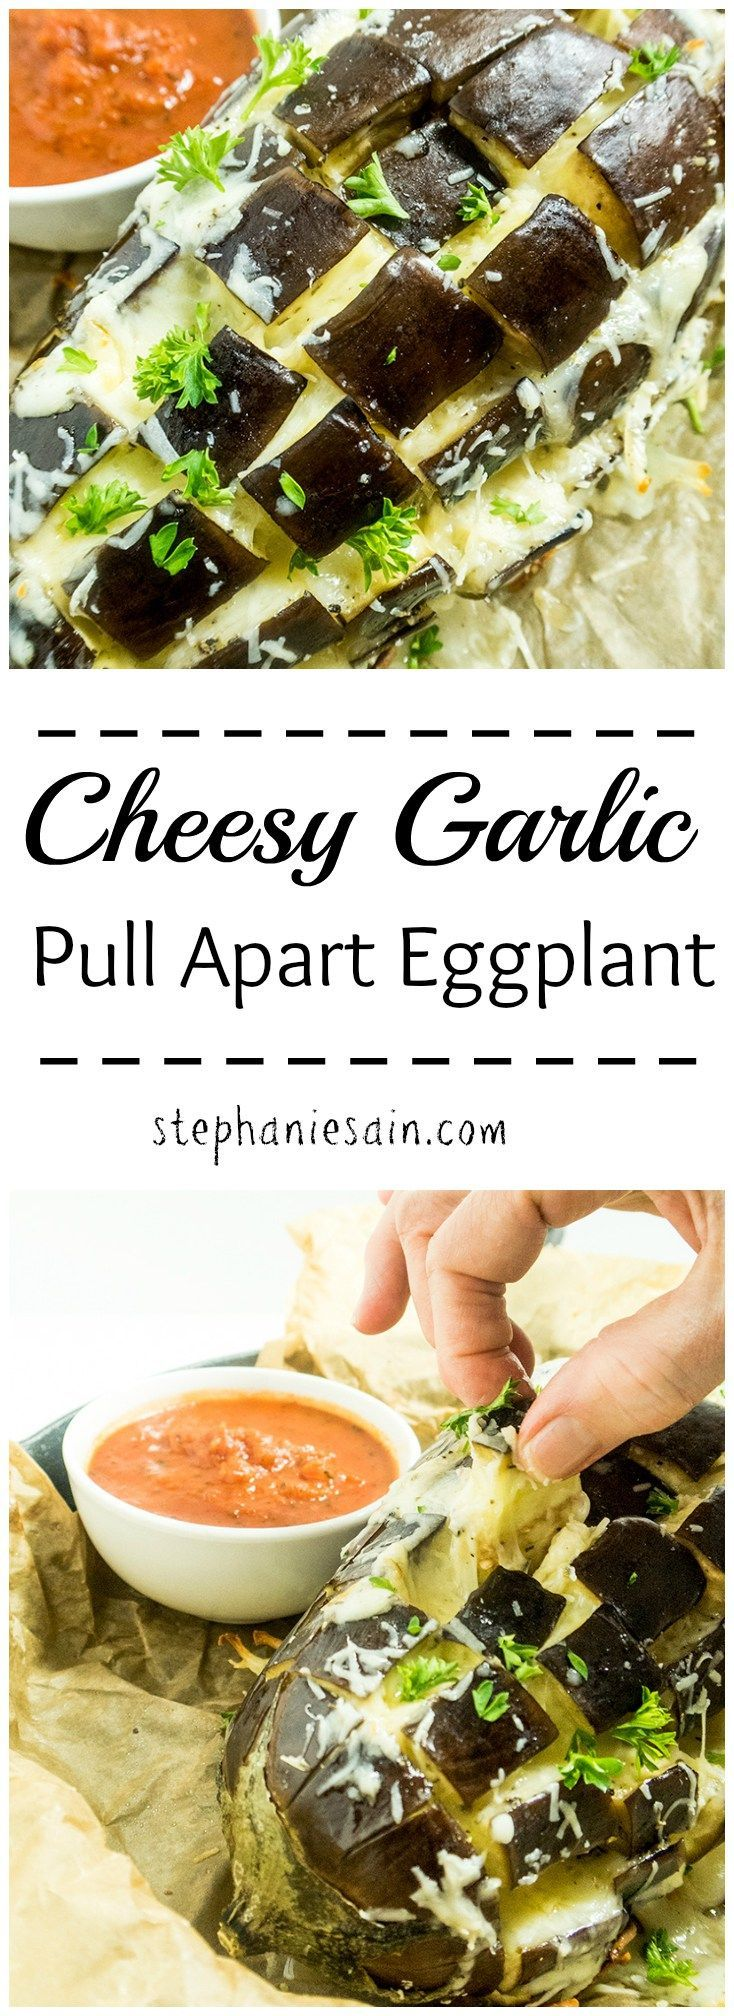 Cheesy Garlic Pull Apart Eggplant is an easy to prepare tasty appetizer or main course option. Low in carbs, vegetarian, and gluten free.